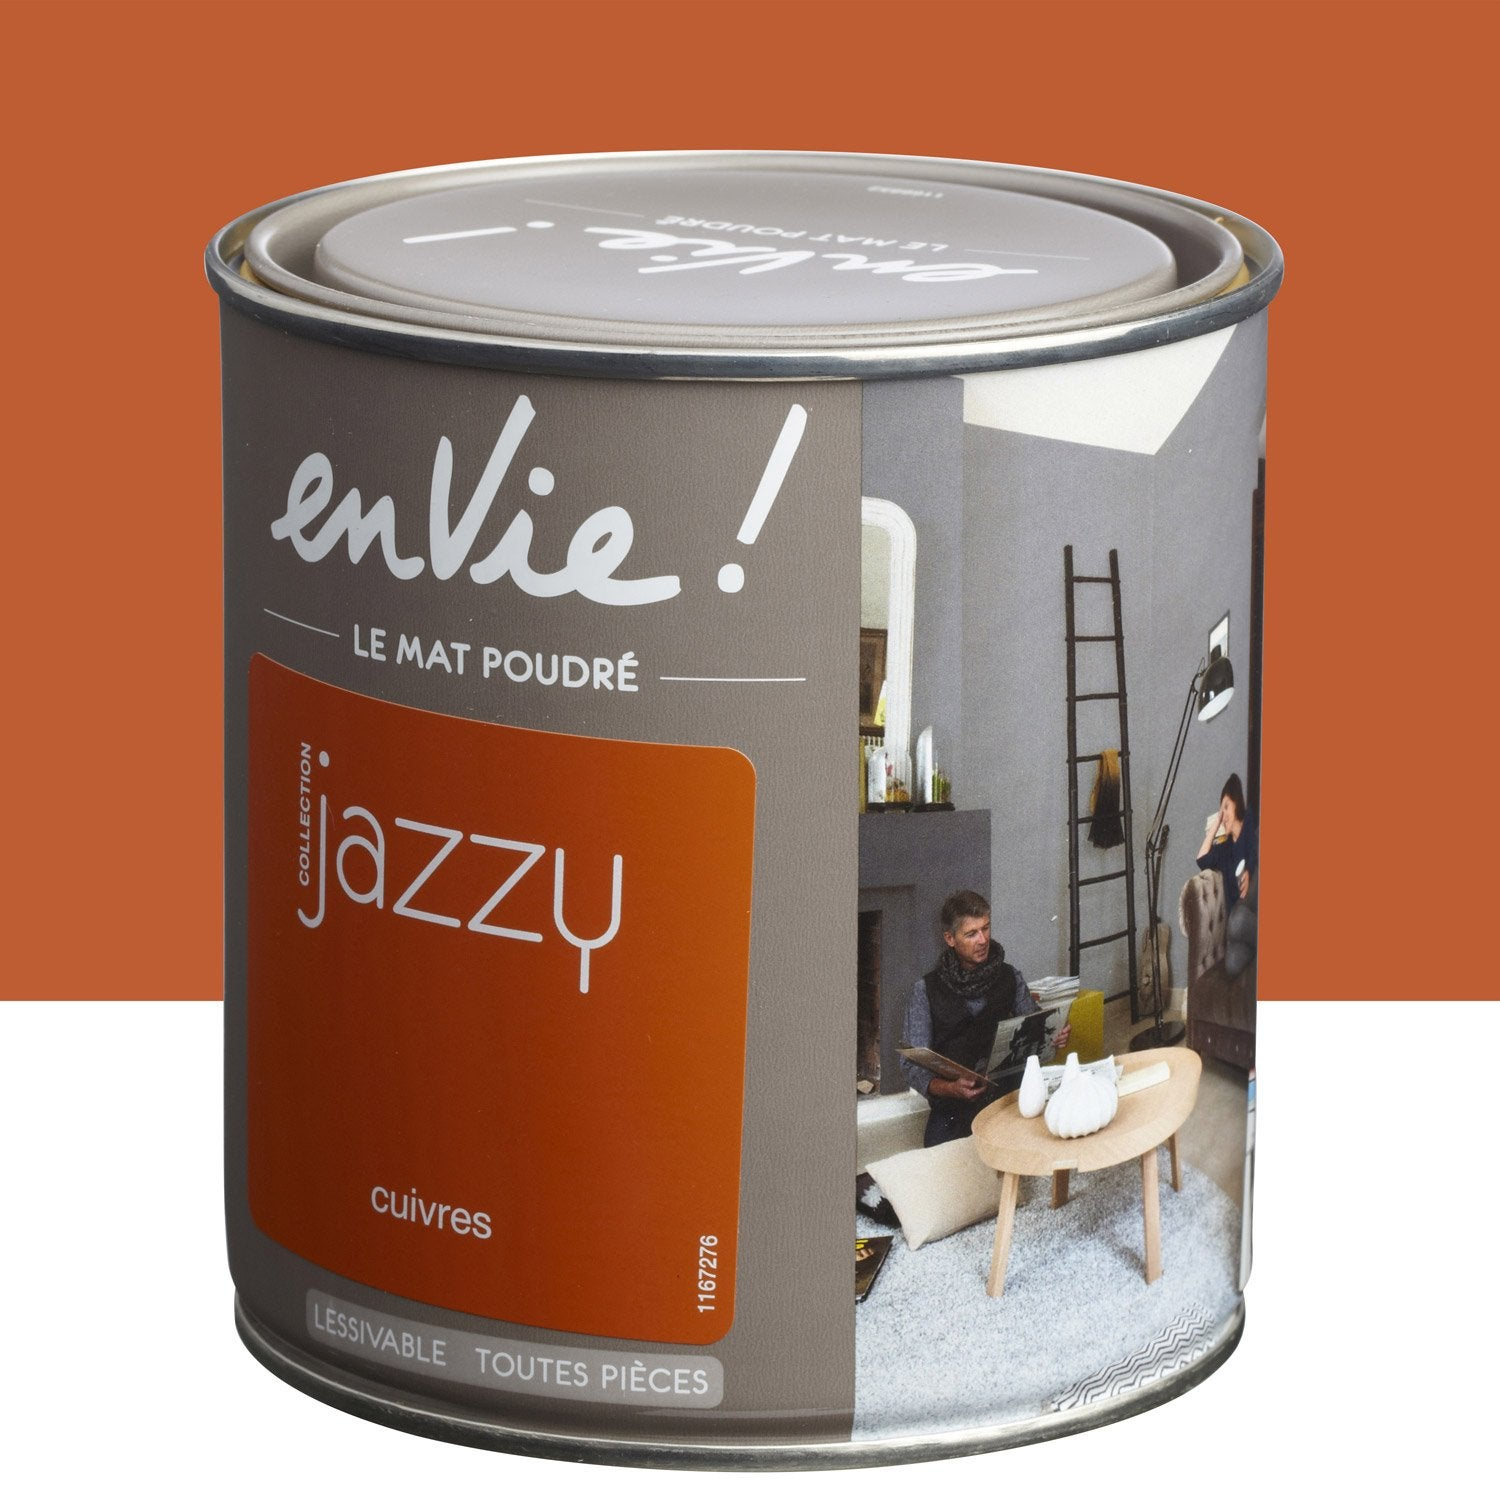 Peinture orange cuivres luxens envie collection jazzy 0 5 l leroy merlin for Peinture teinte leroy merlin